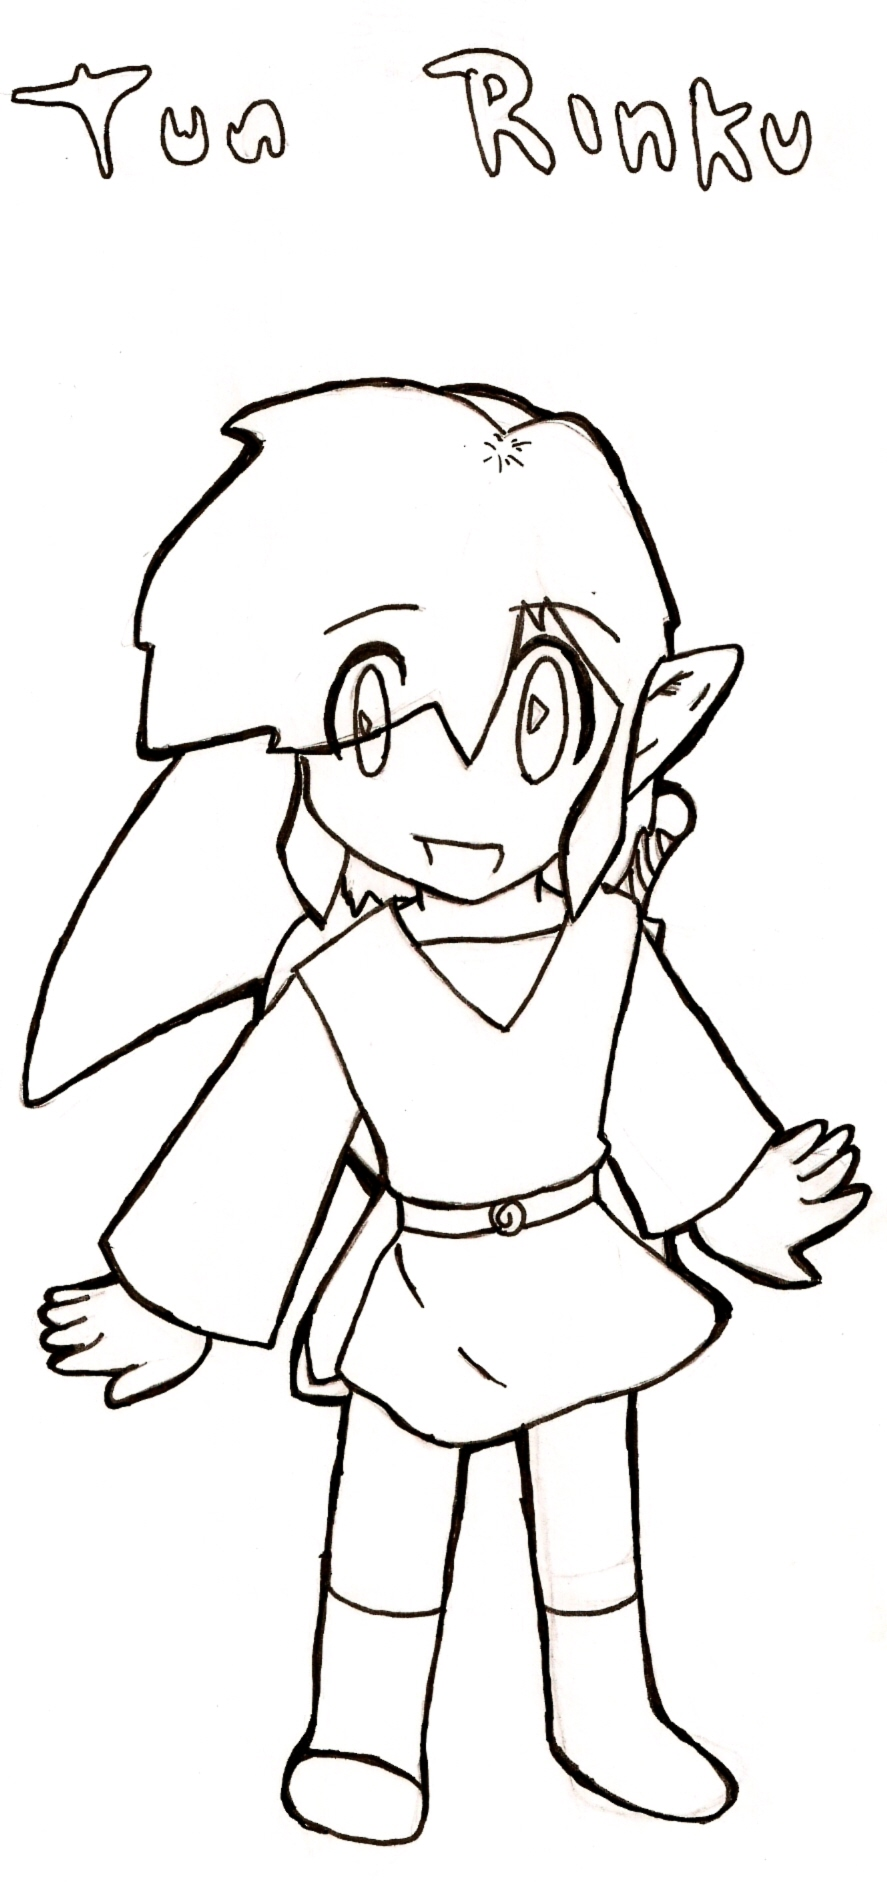 Toon Link-Coloring sheet by ChibiFighter on DeviantArt